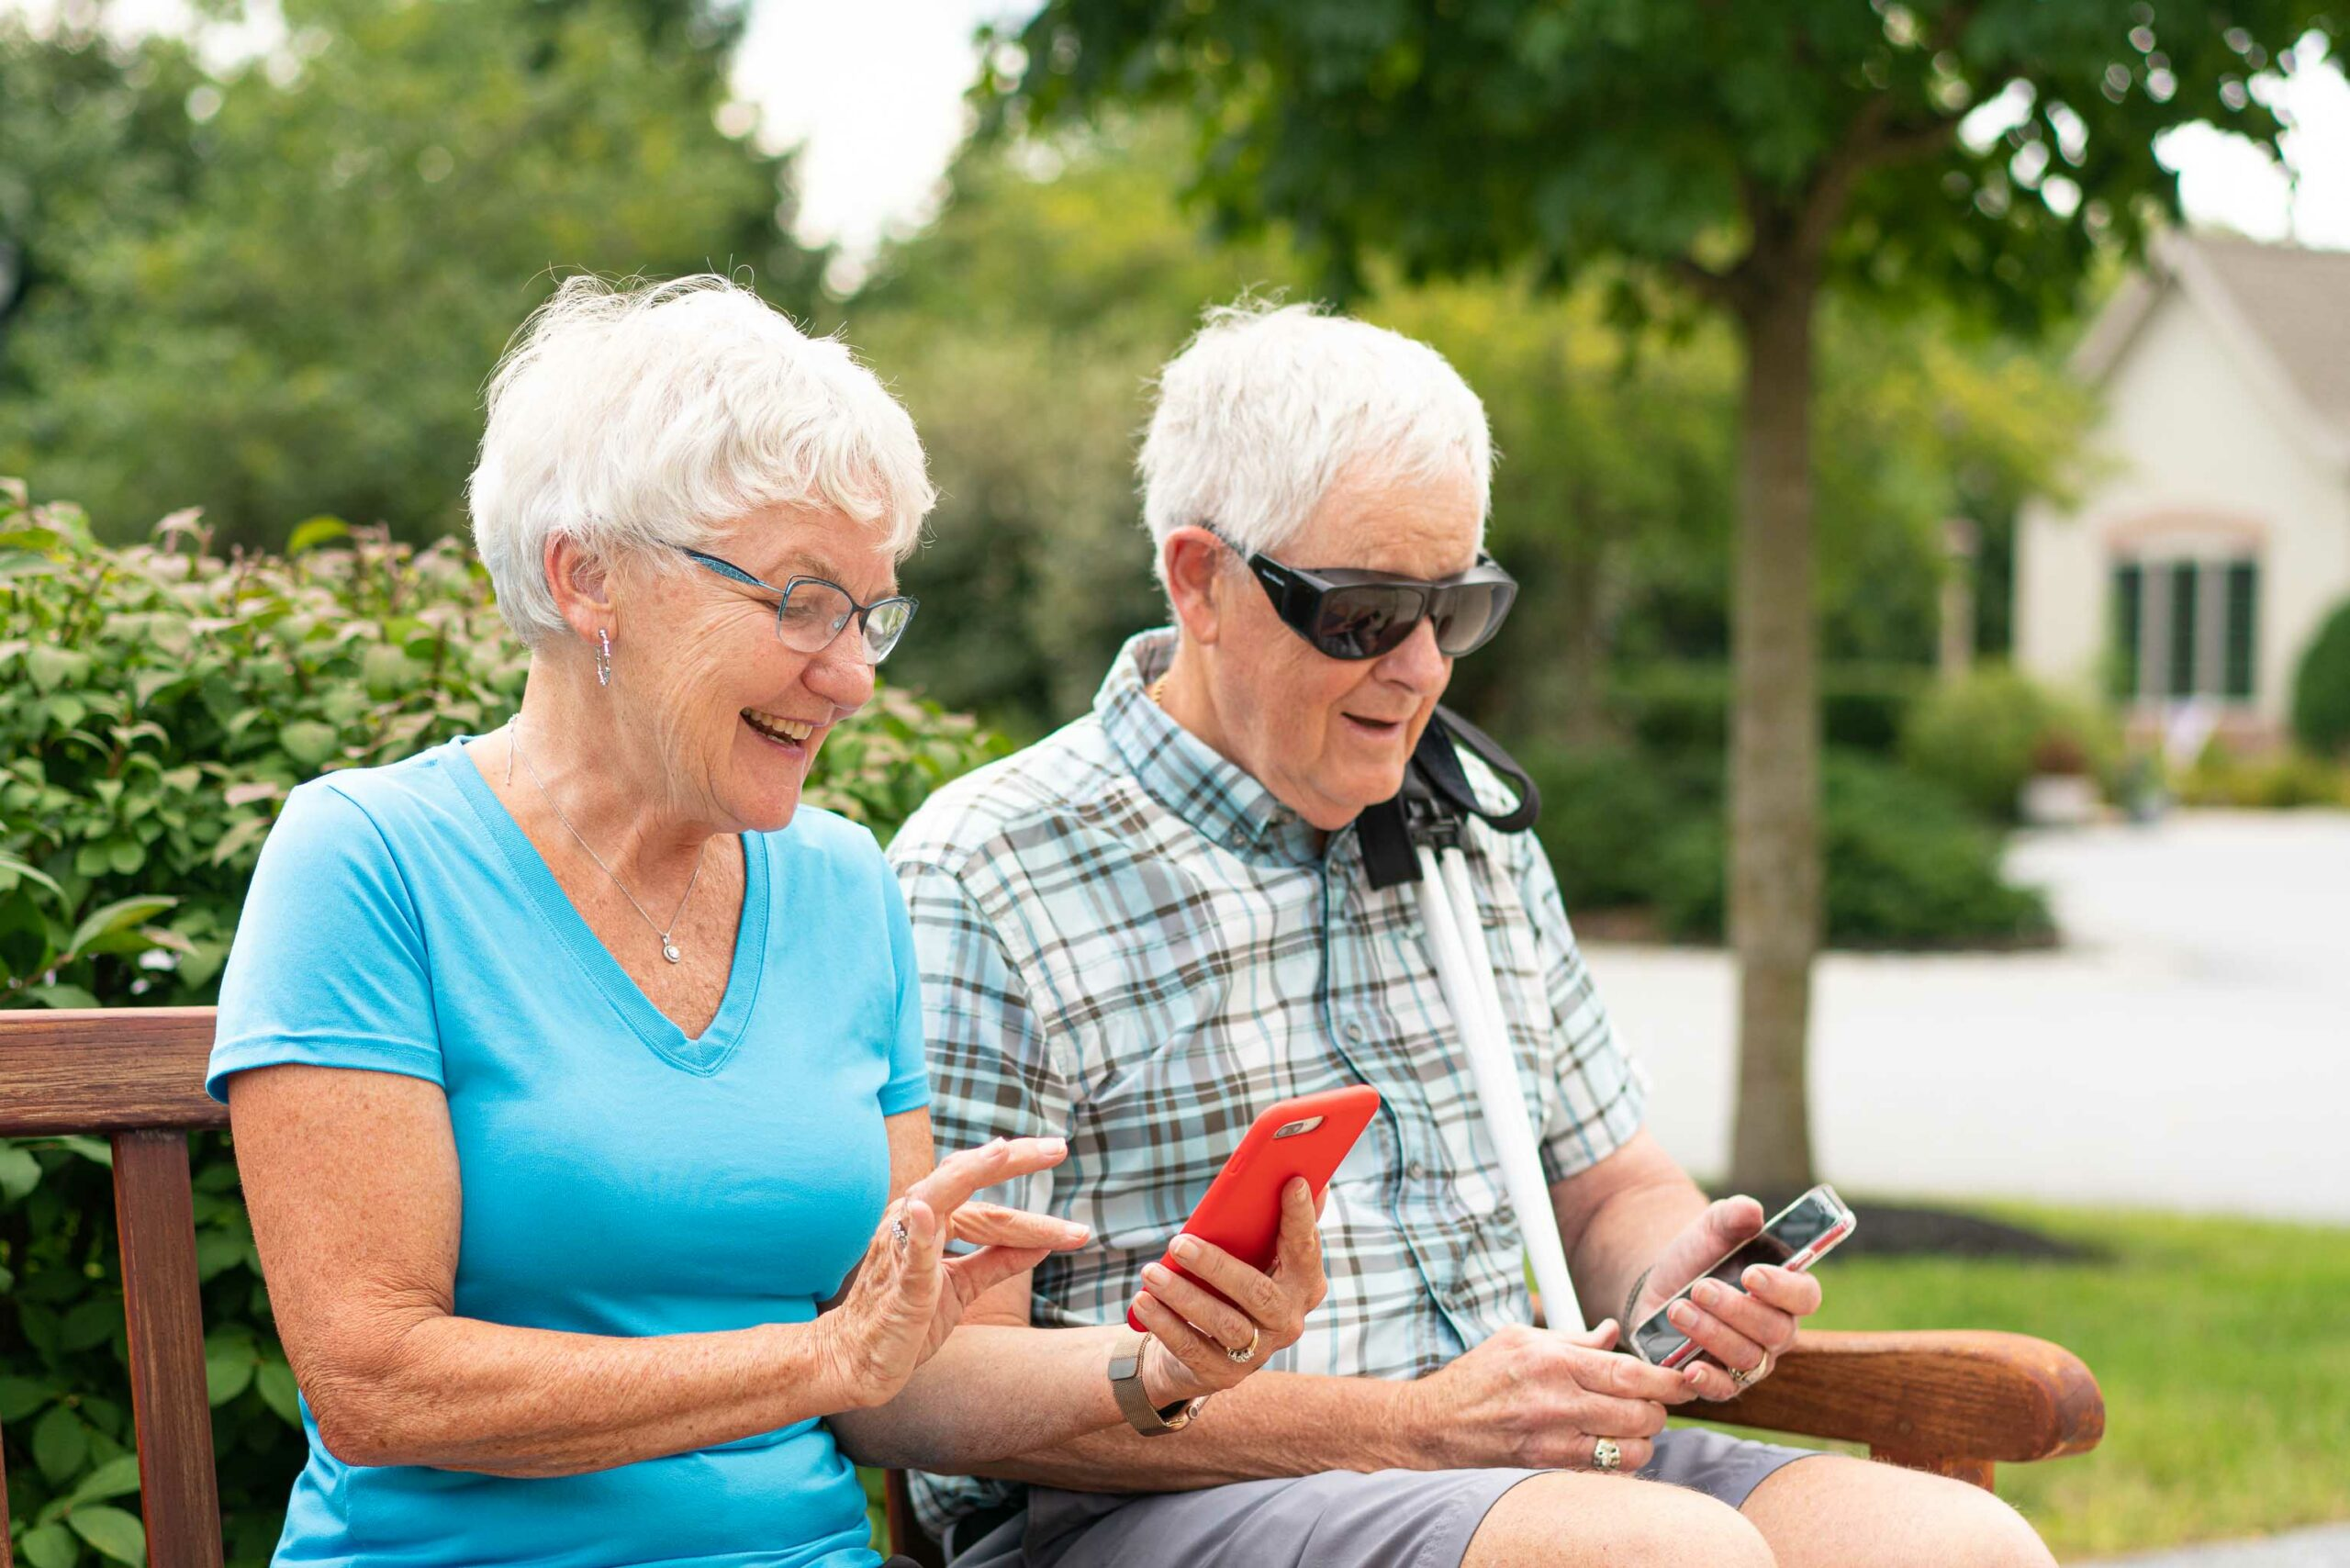 A man and woman sit on a bench together. The woman, with silver hair and blue shirt, is looking at her cell phone. The man, with silver hair and plaid shirt, wearing sun shields, is also looking at a cell phone.